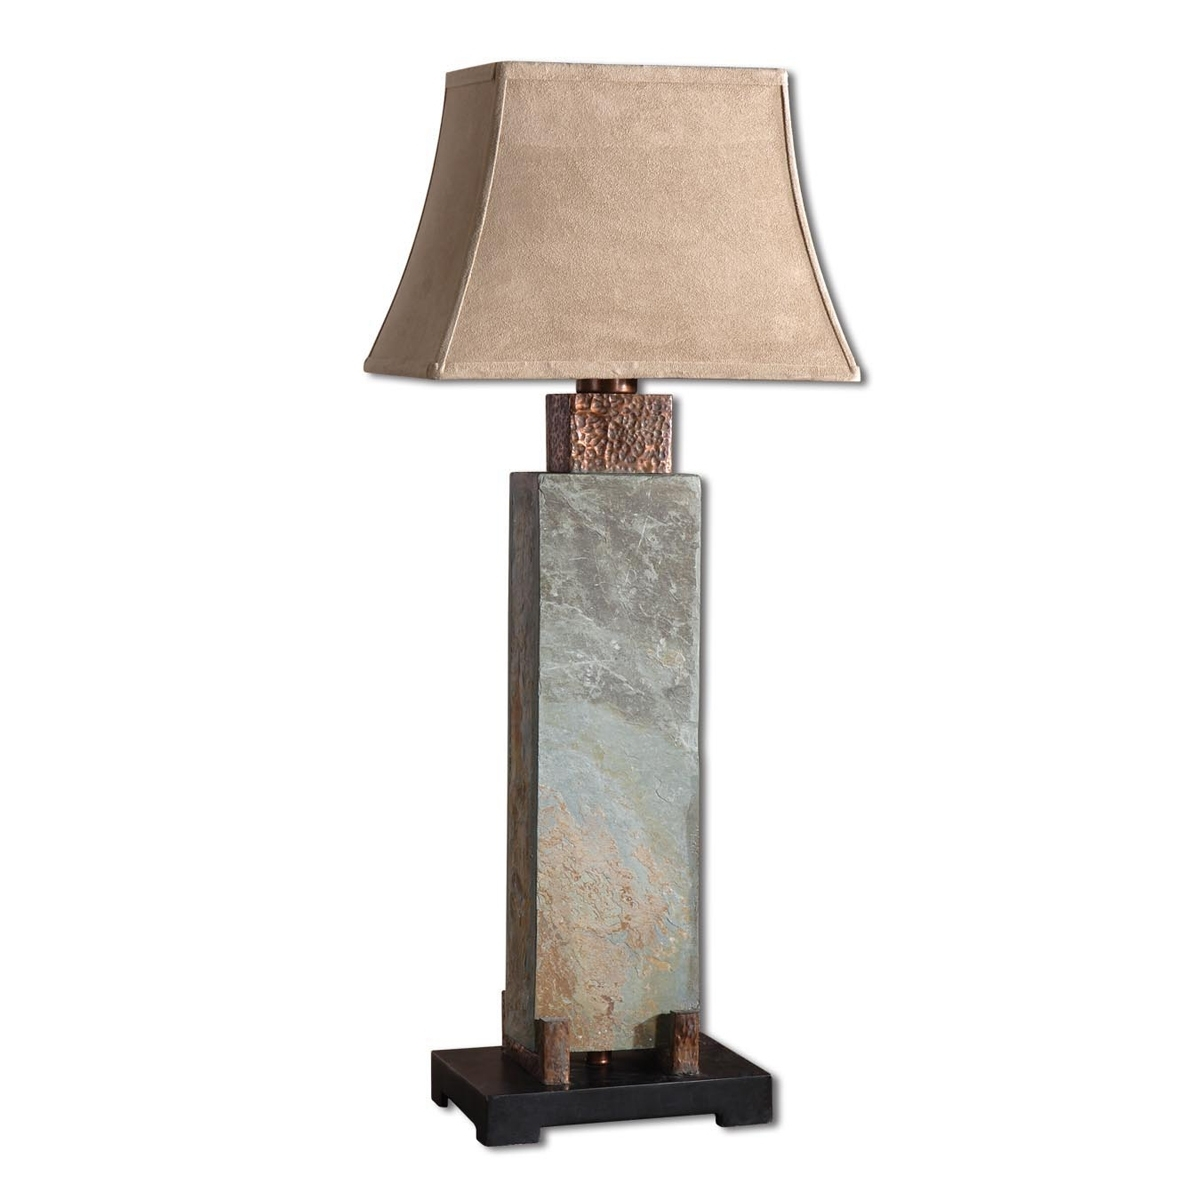 Tall Table Lamps For Living Room With Most Popular Creative Decoration Rustic Table Lamps For Living Room Rustic Table (View 6 of 20)